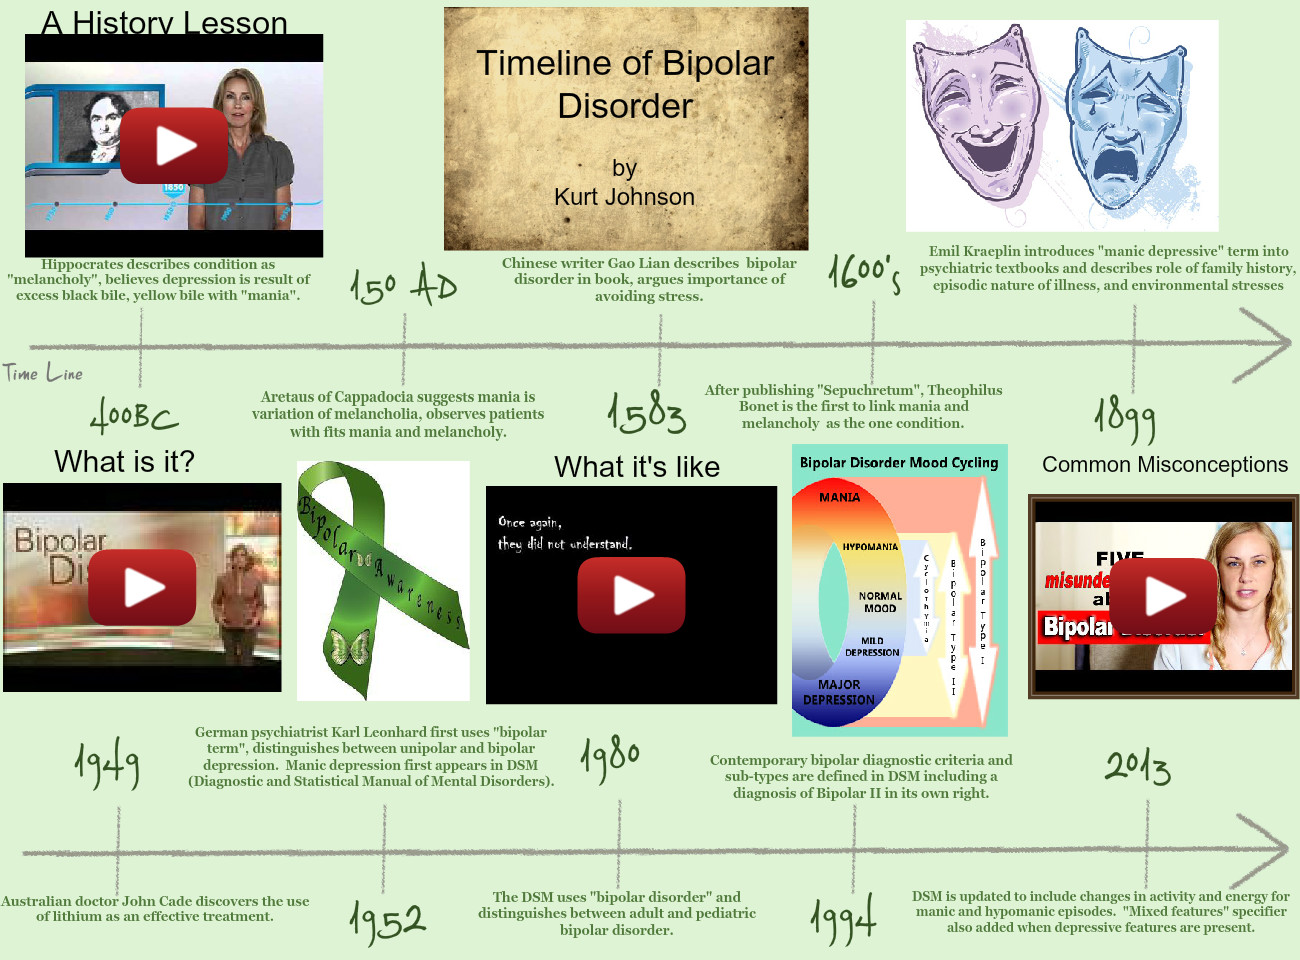 History of Bipolar Disorder